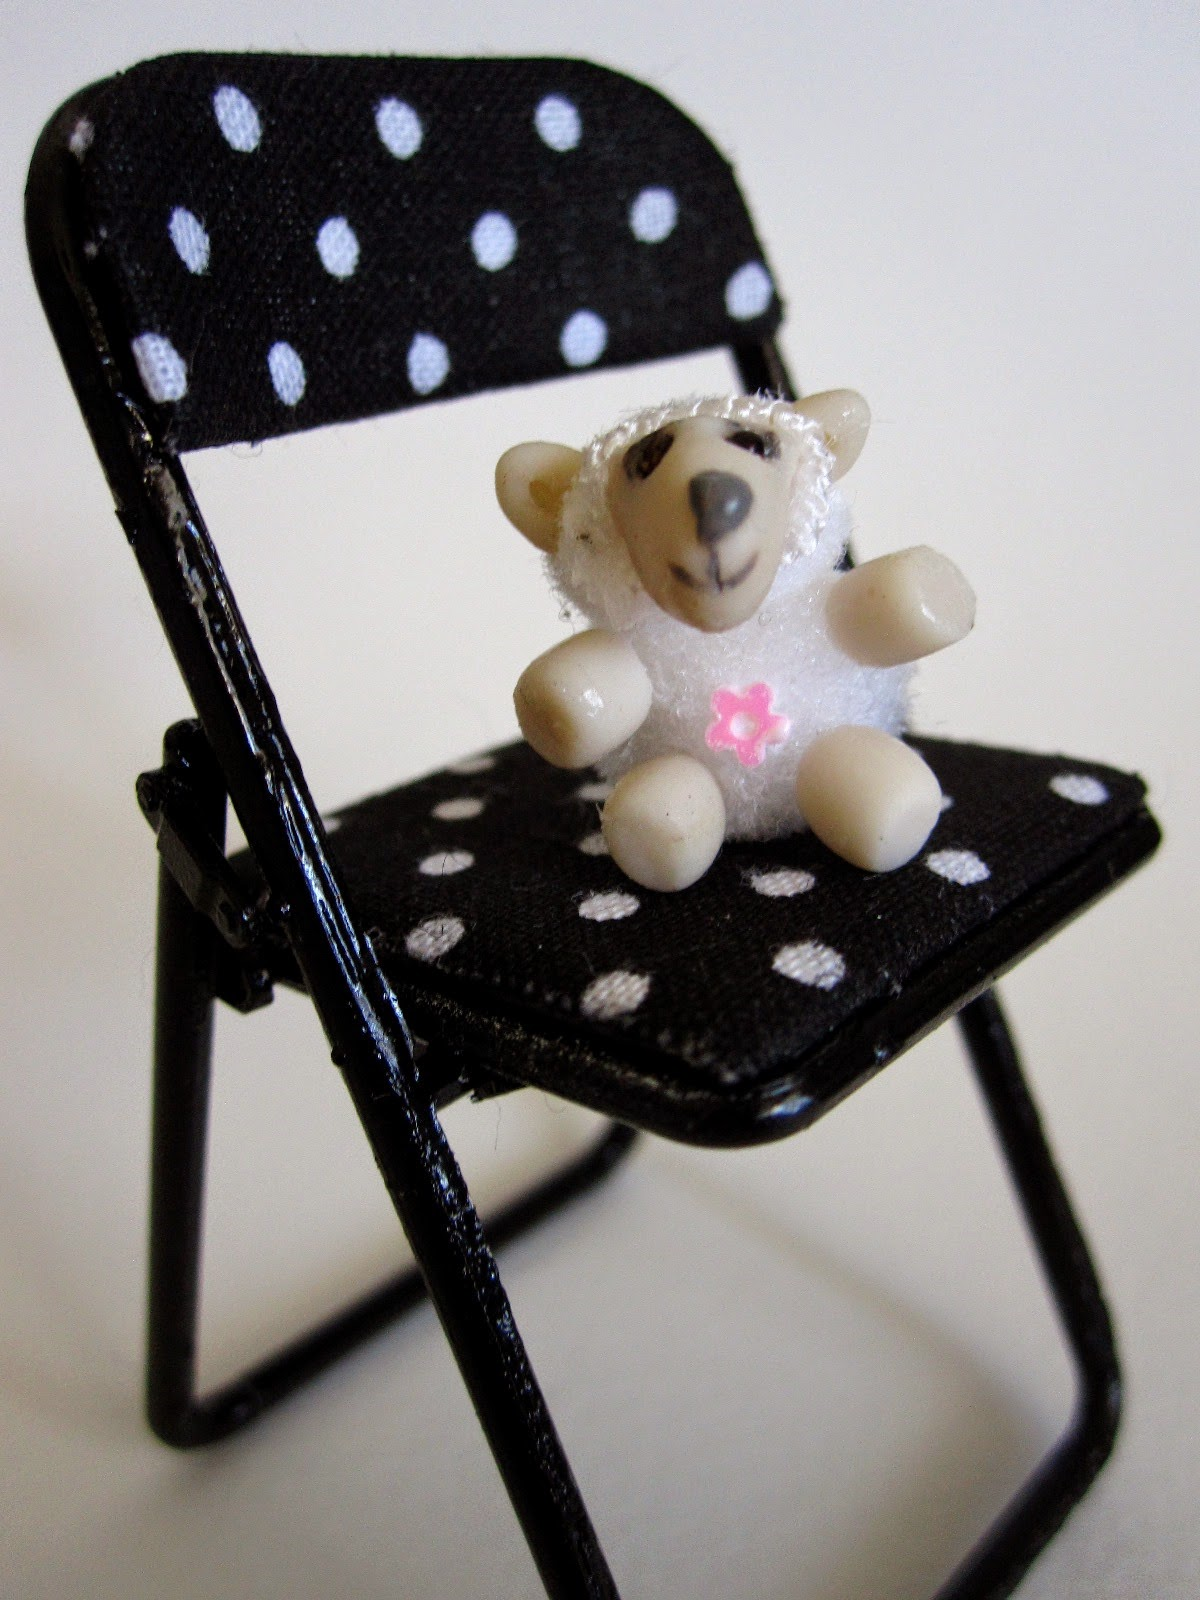 Modern dolls' house miniature stuffed toy sheep sitting on a miniature black and white spotted folding chair.